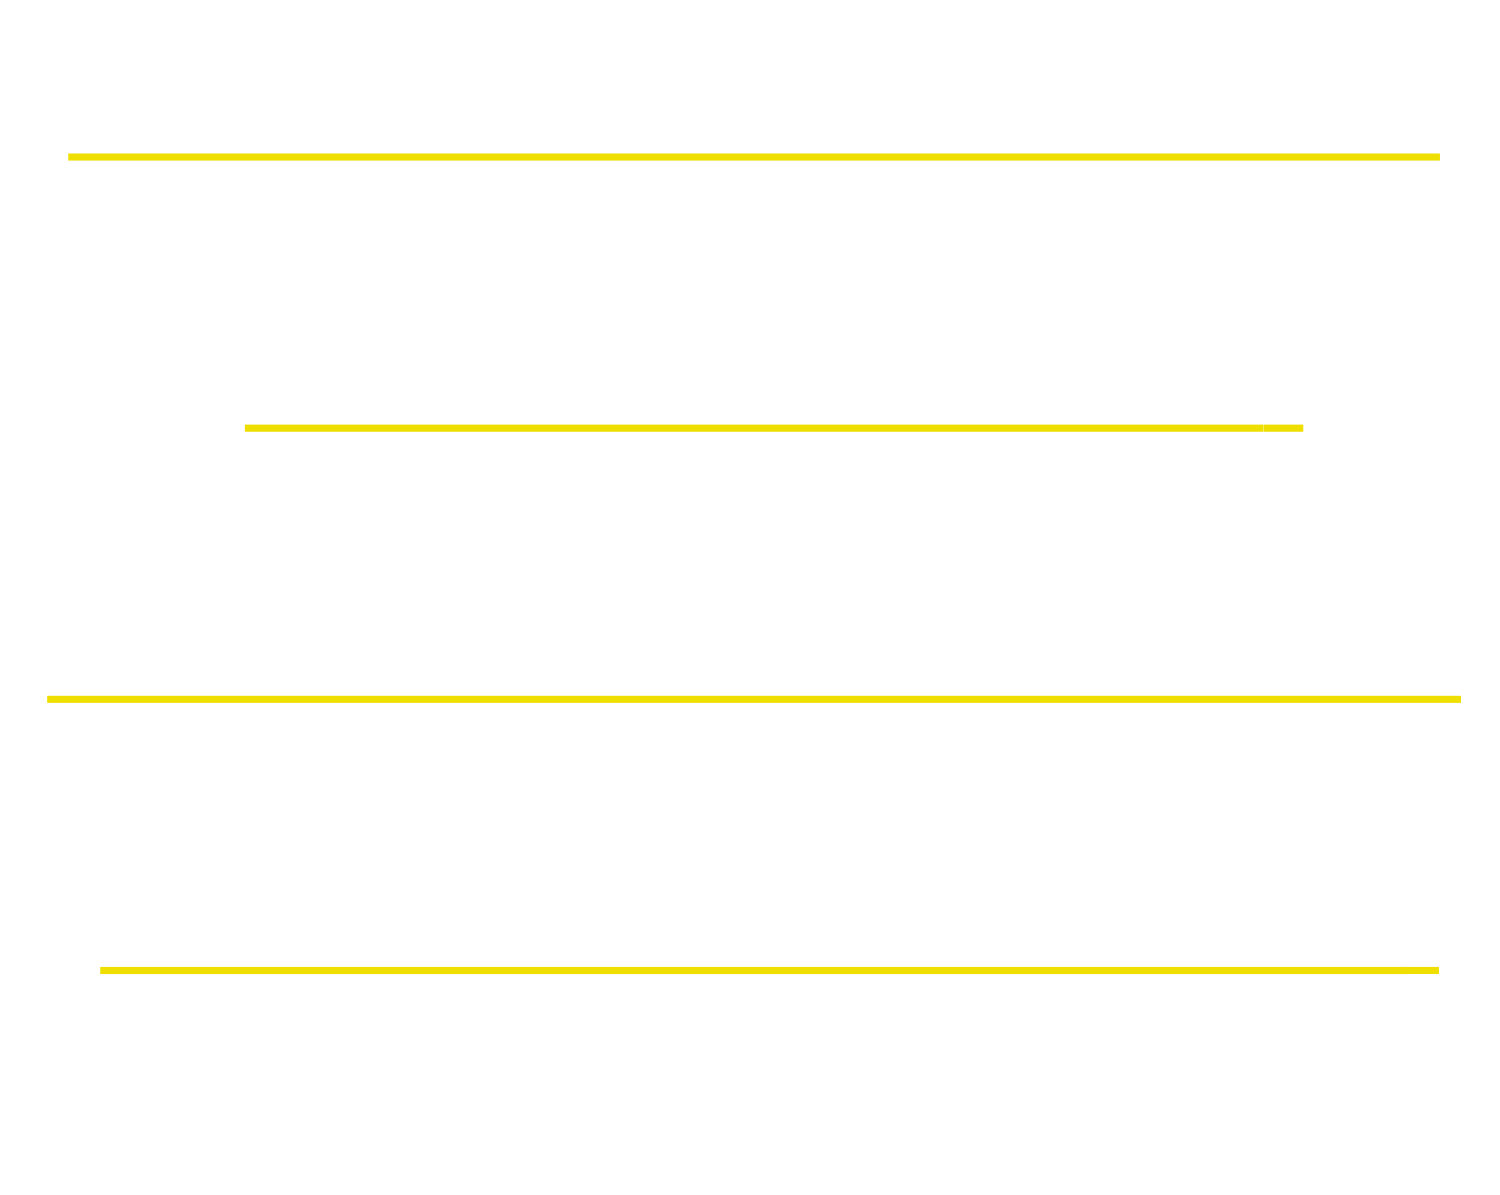 No one person can do everything, but every one of us can do something. – Christine Caine